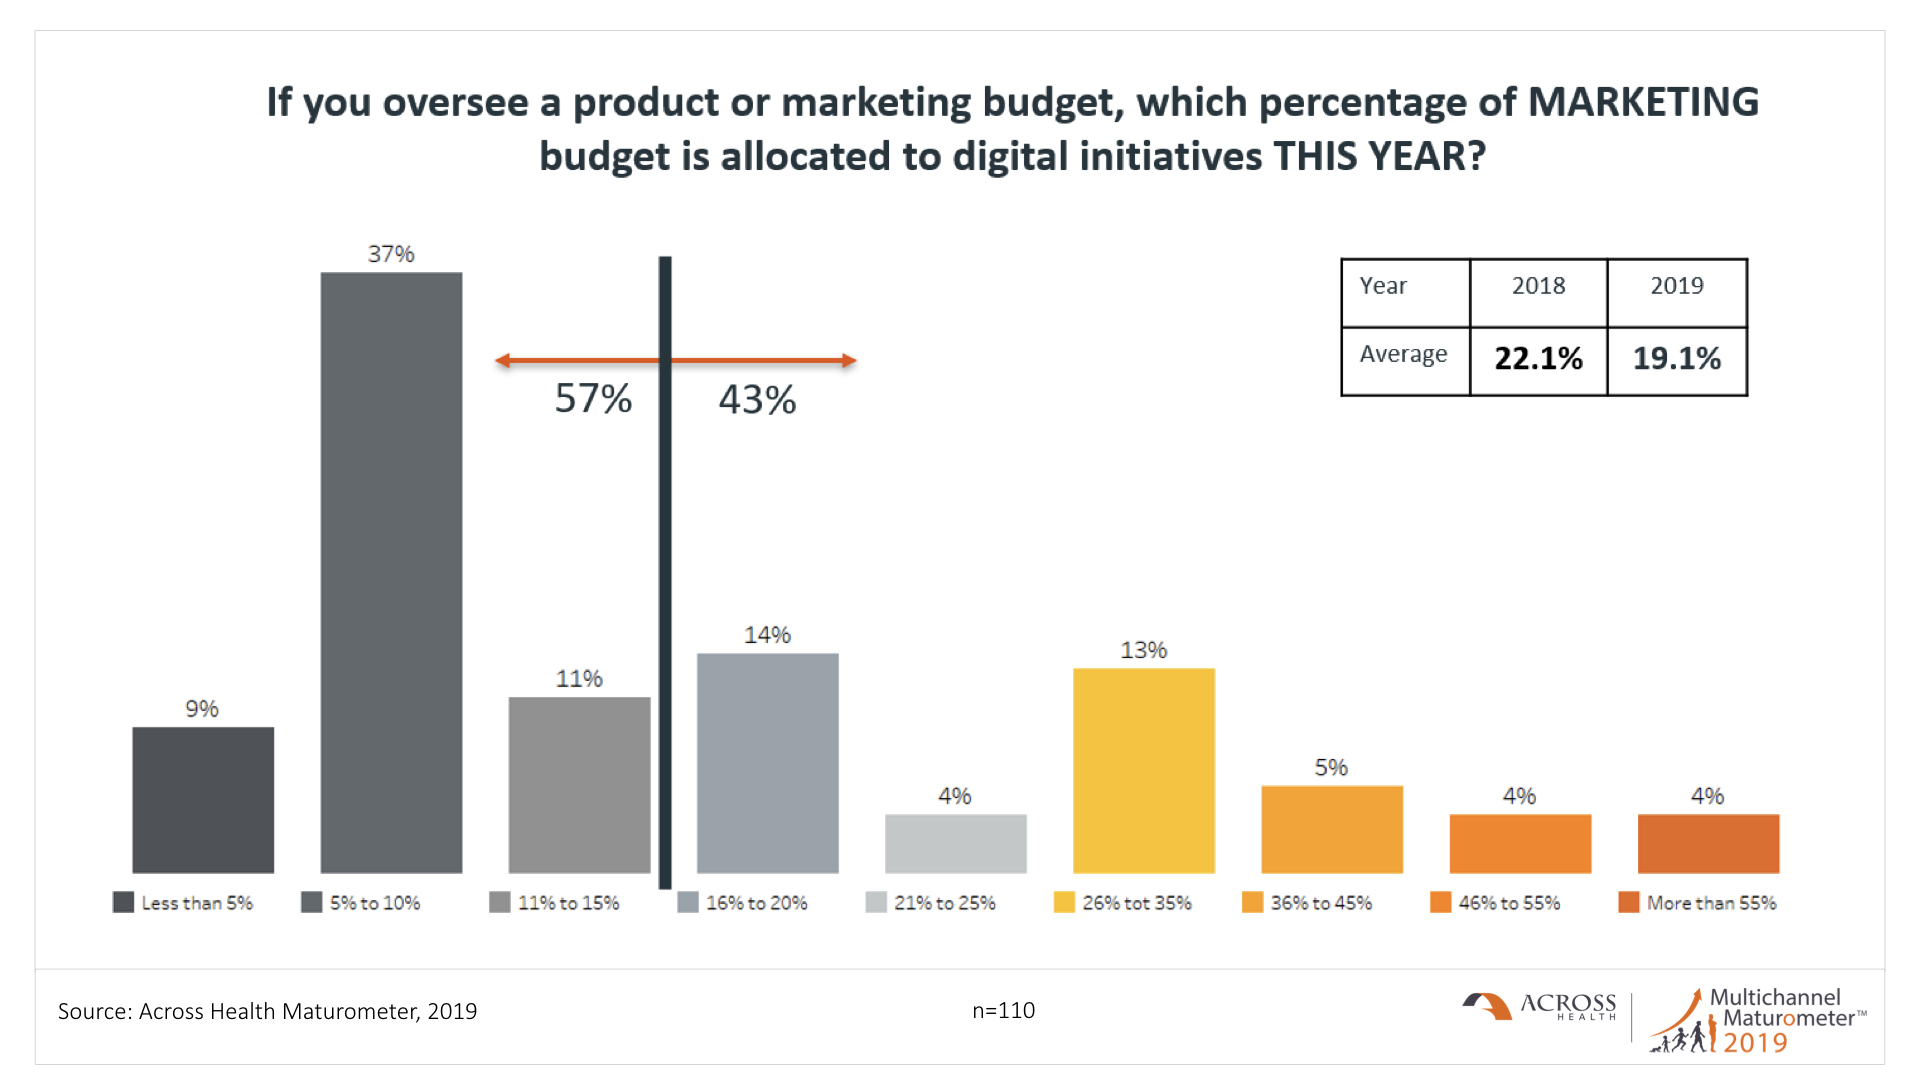 Percentage of marketing budget allocated to digital initiatives this year